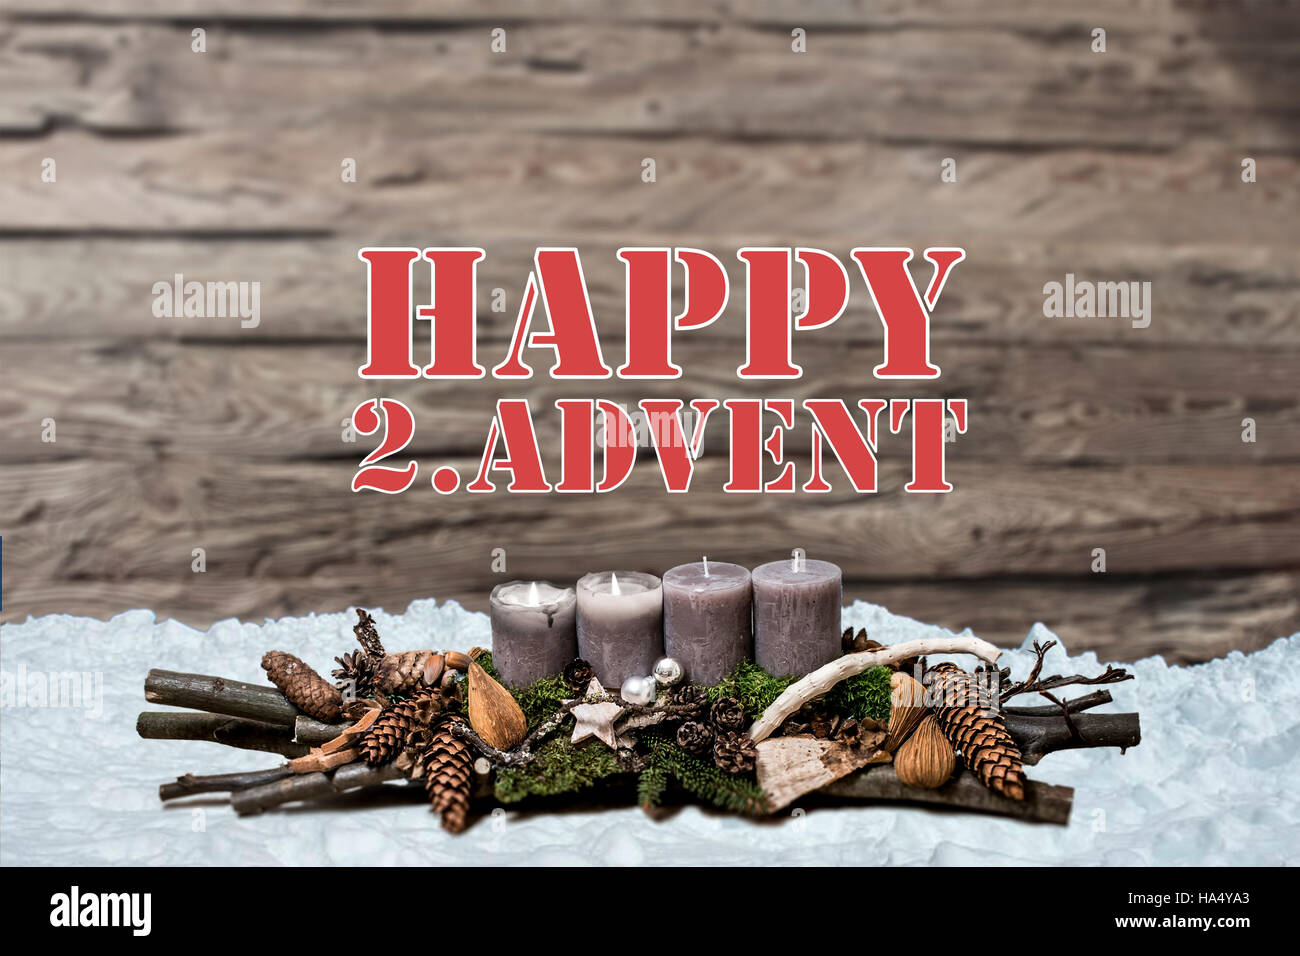 Merry Christmas decoration advent with burning grey candle Blurred background snow text message englisch 2nd - Stock Image